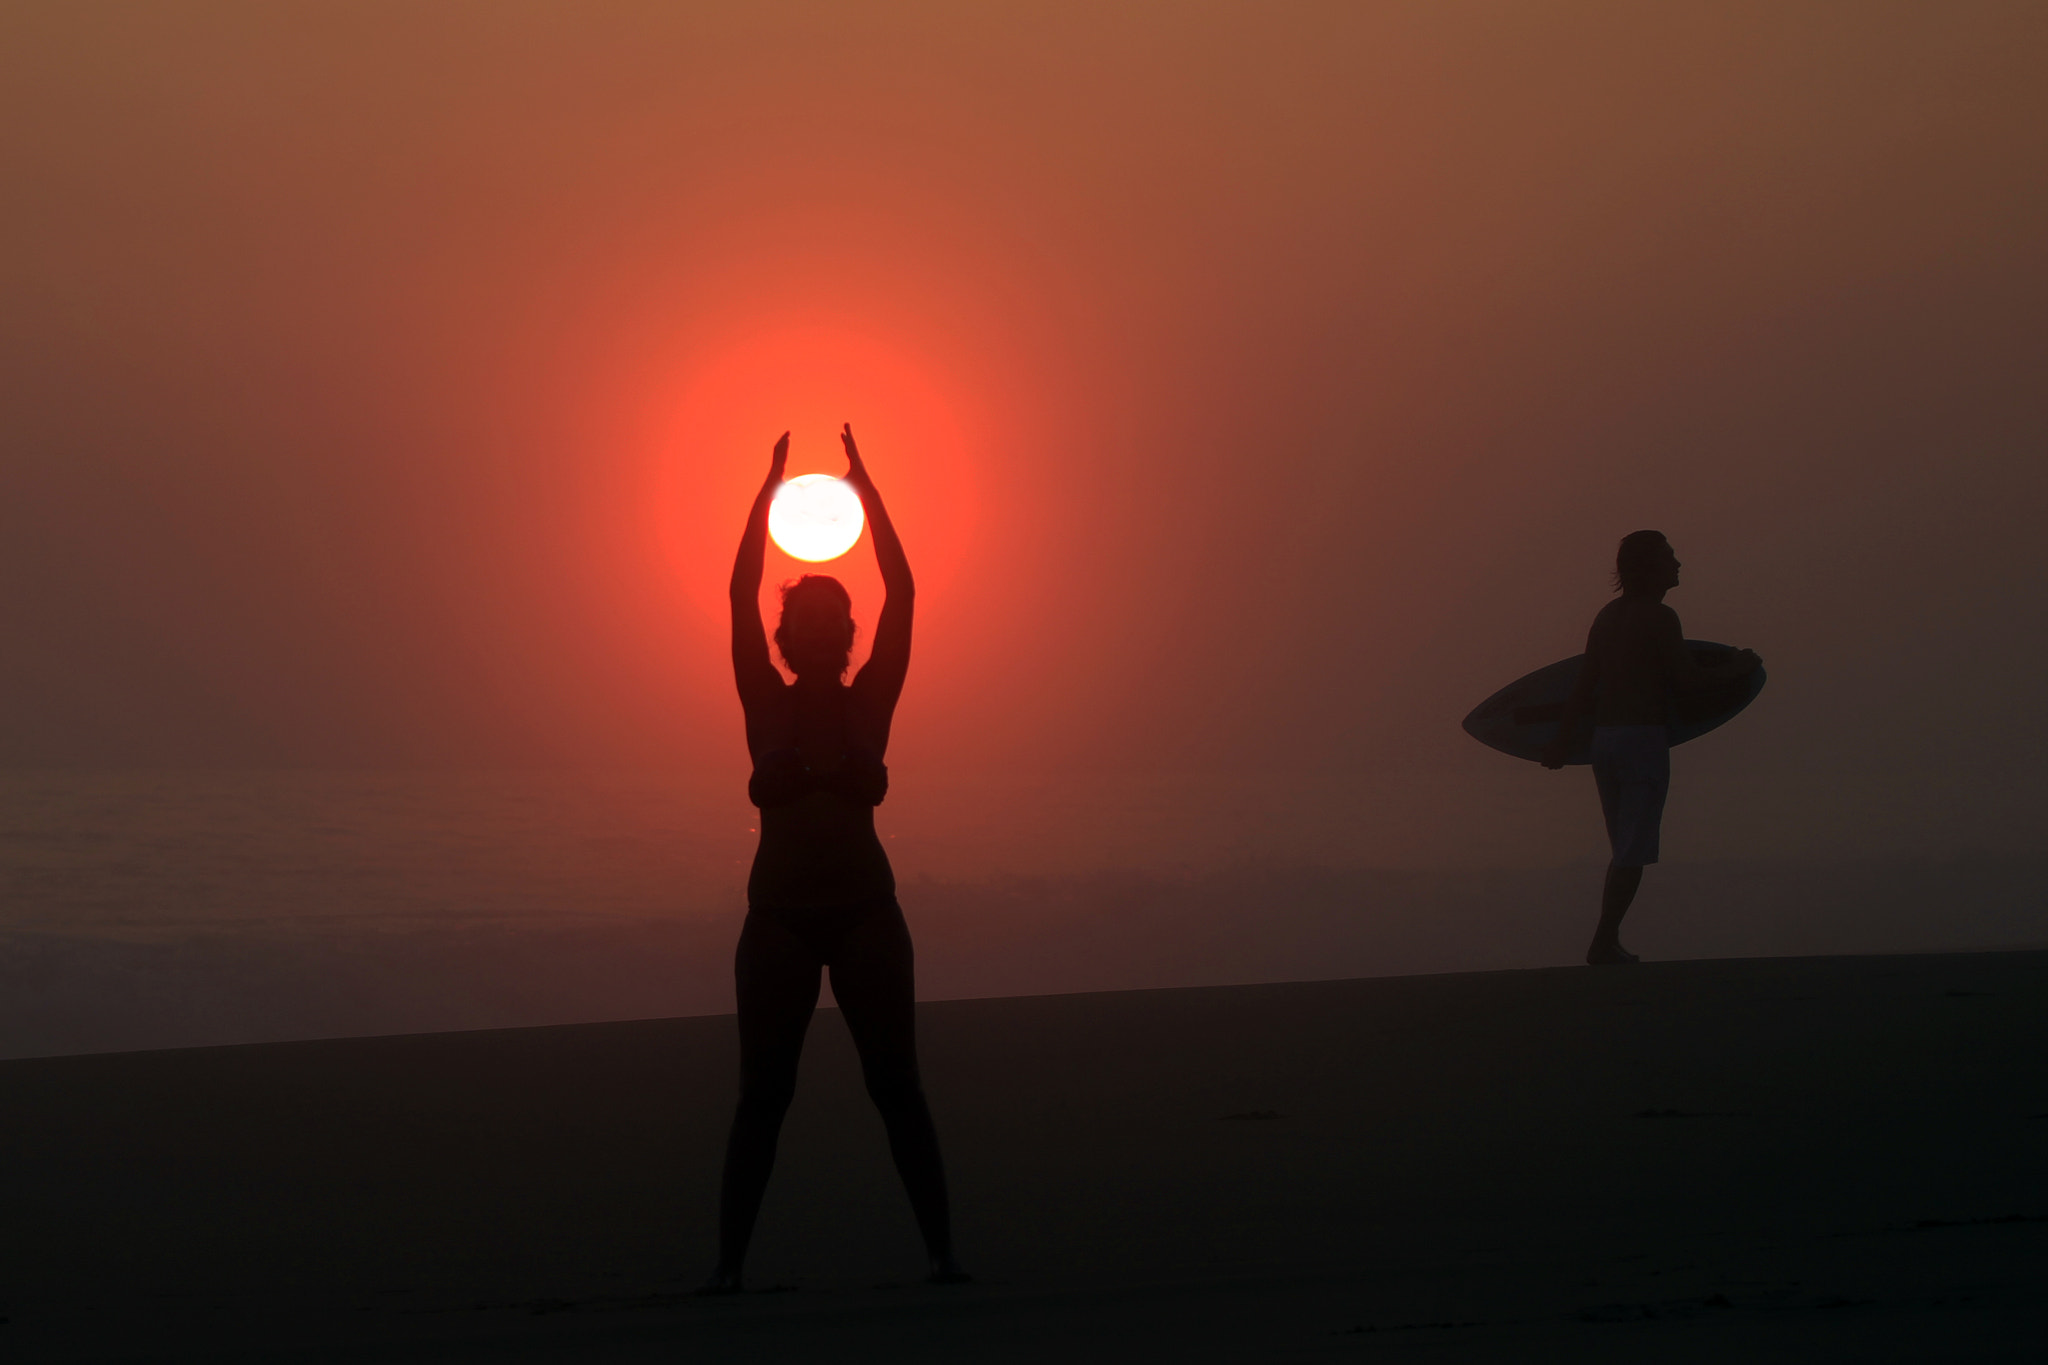 Photograph Sun, Yoga and Surf by Cristobal Garciaferro Rubio on 500px